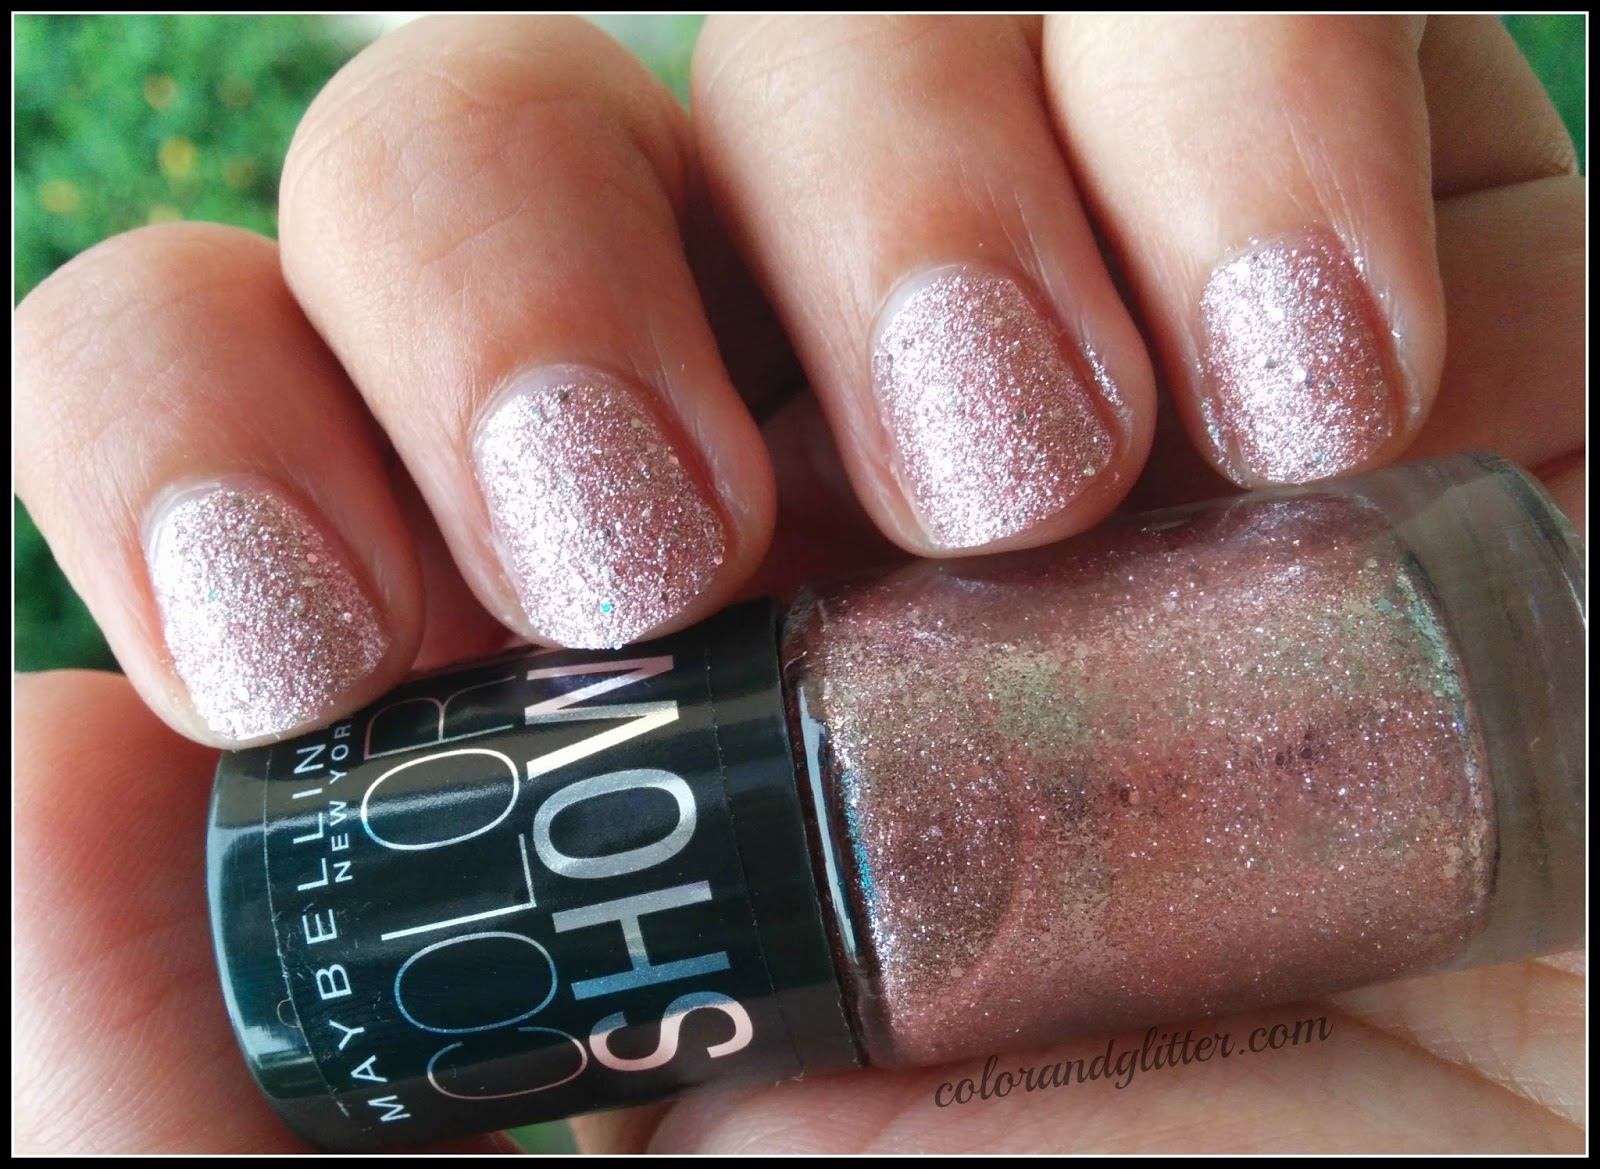 Maybelline Color Show Glitter Mania Nail Polish in Pink Champange || Review and Swatches